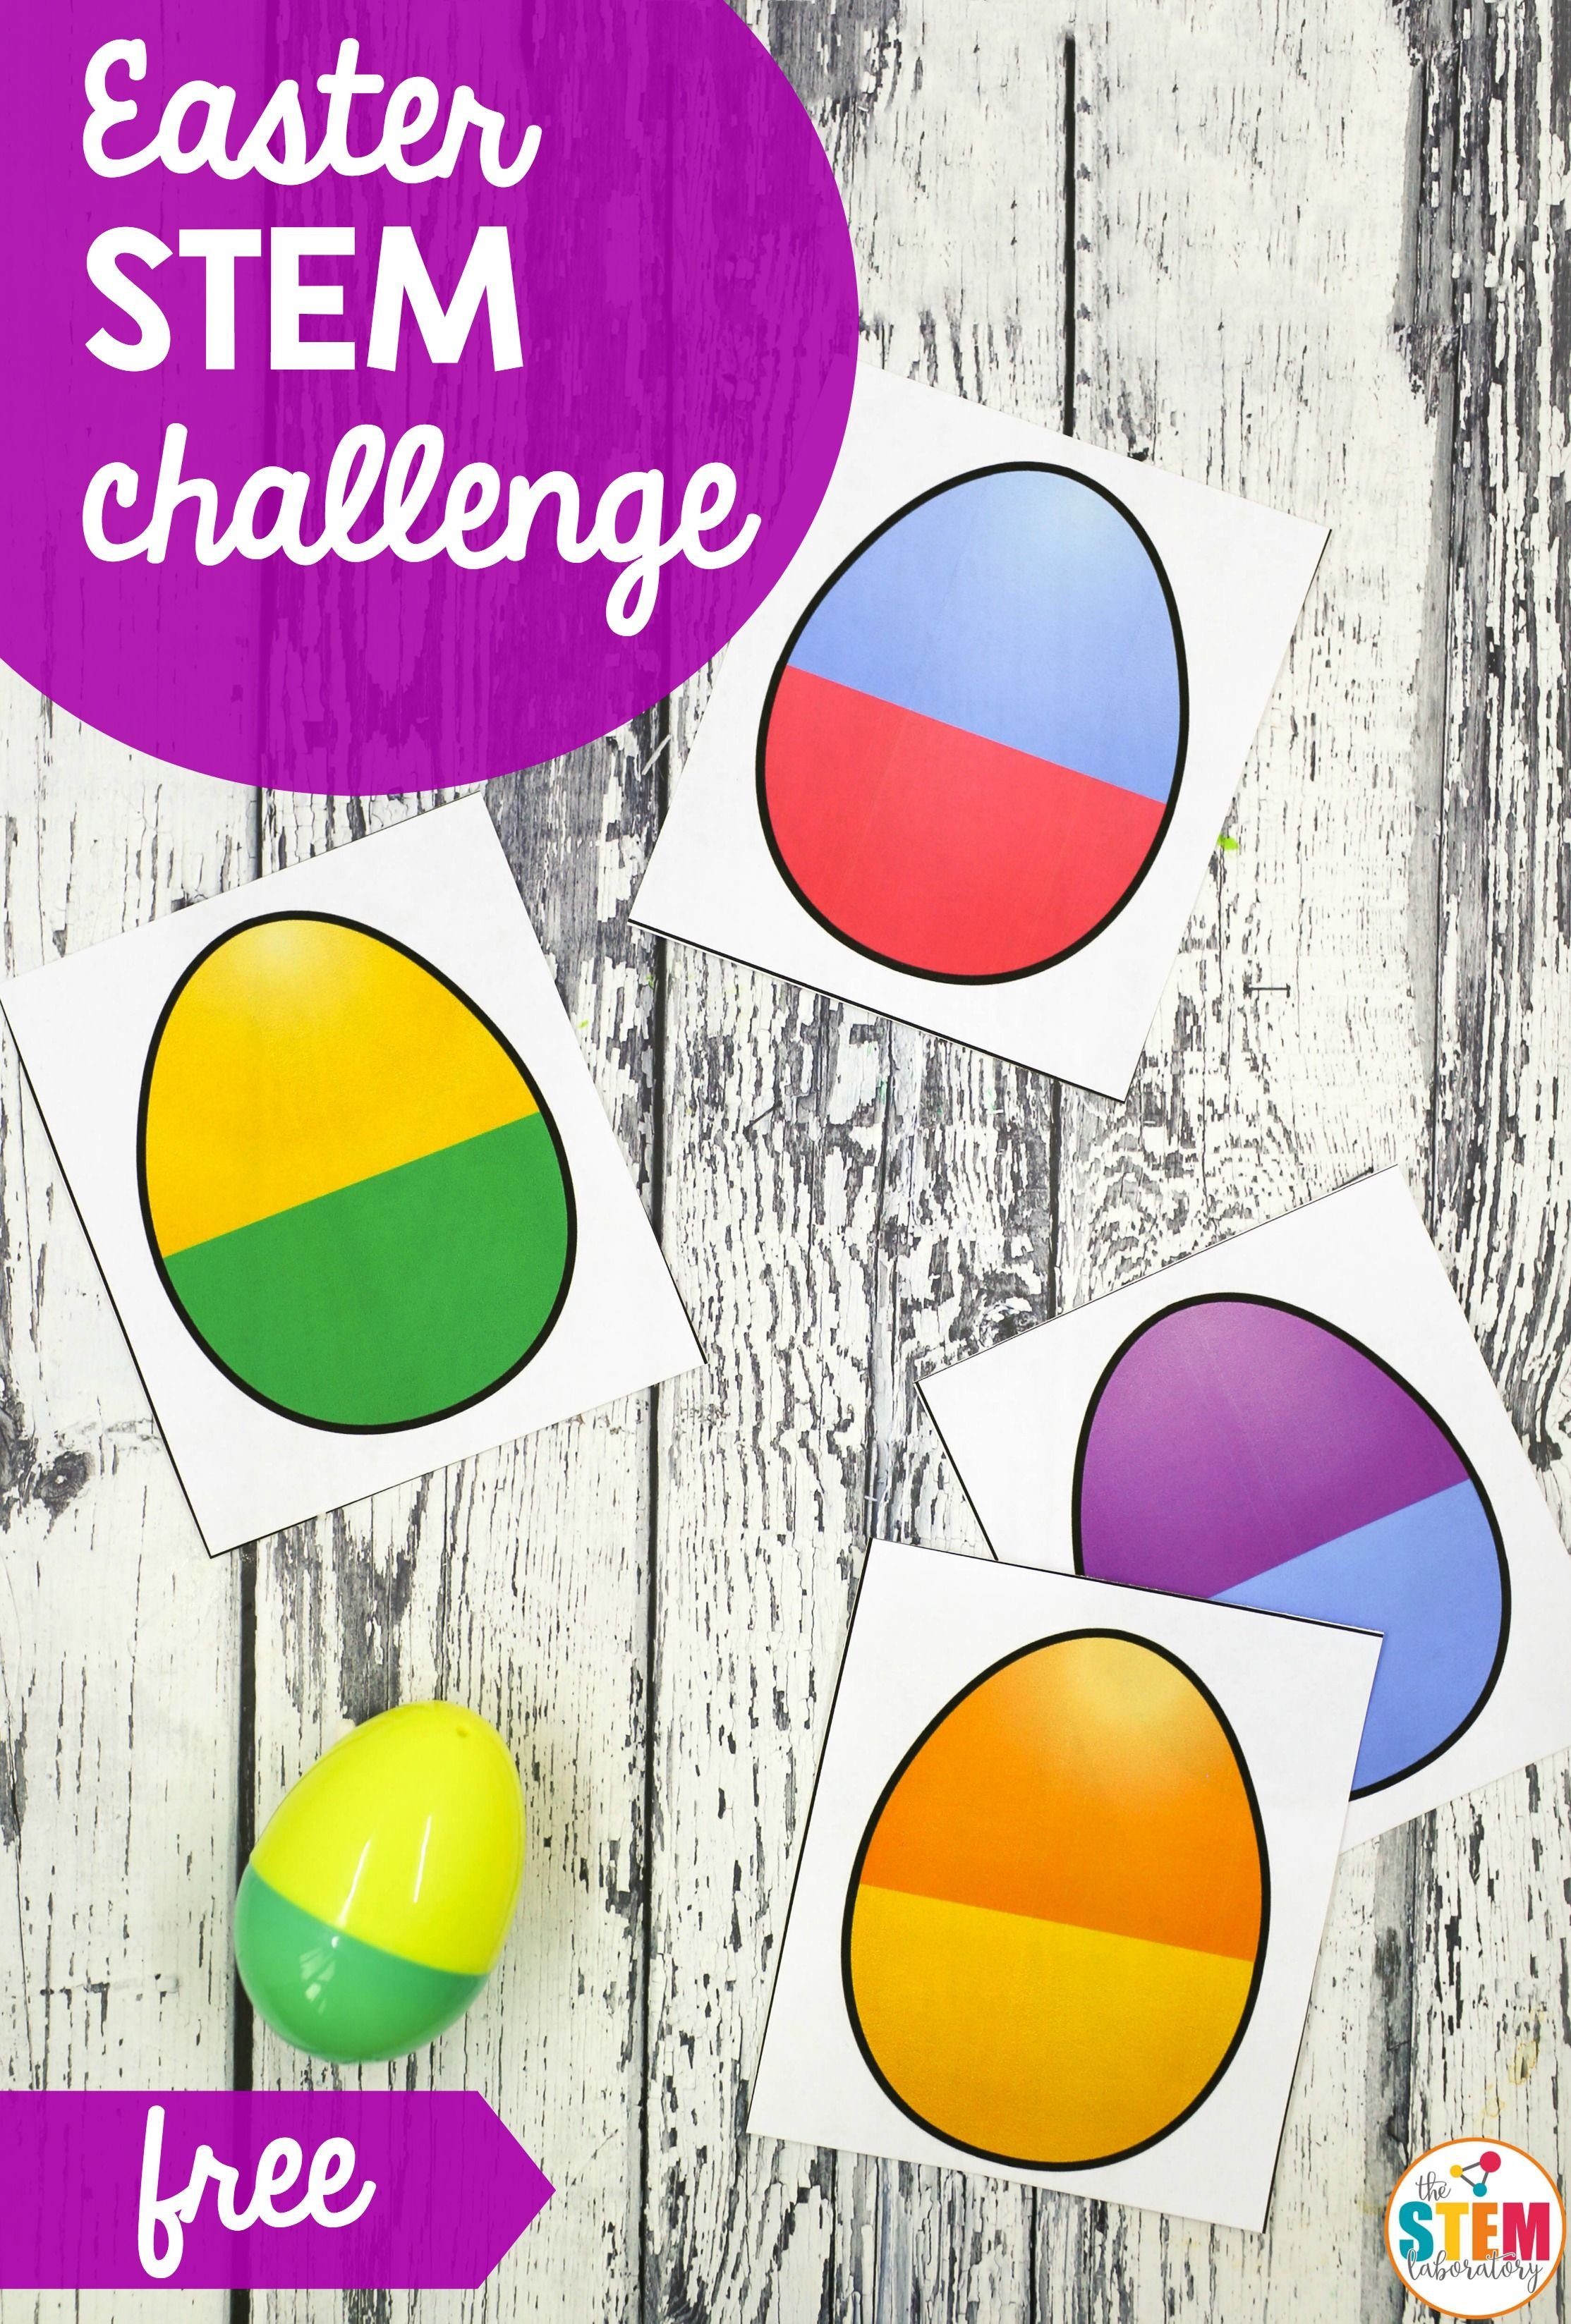 Easter Egg Stem Challenges The Stem Laboratory Easter Activities For Kids Easter Math Activities Easter Stem Activities [ 3295 x 2227 Pixel ]